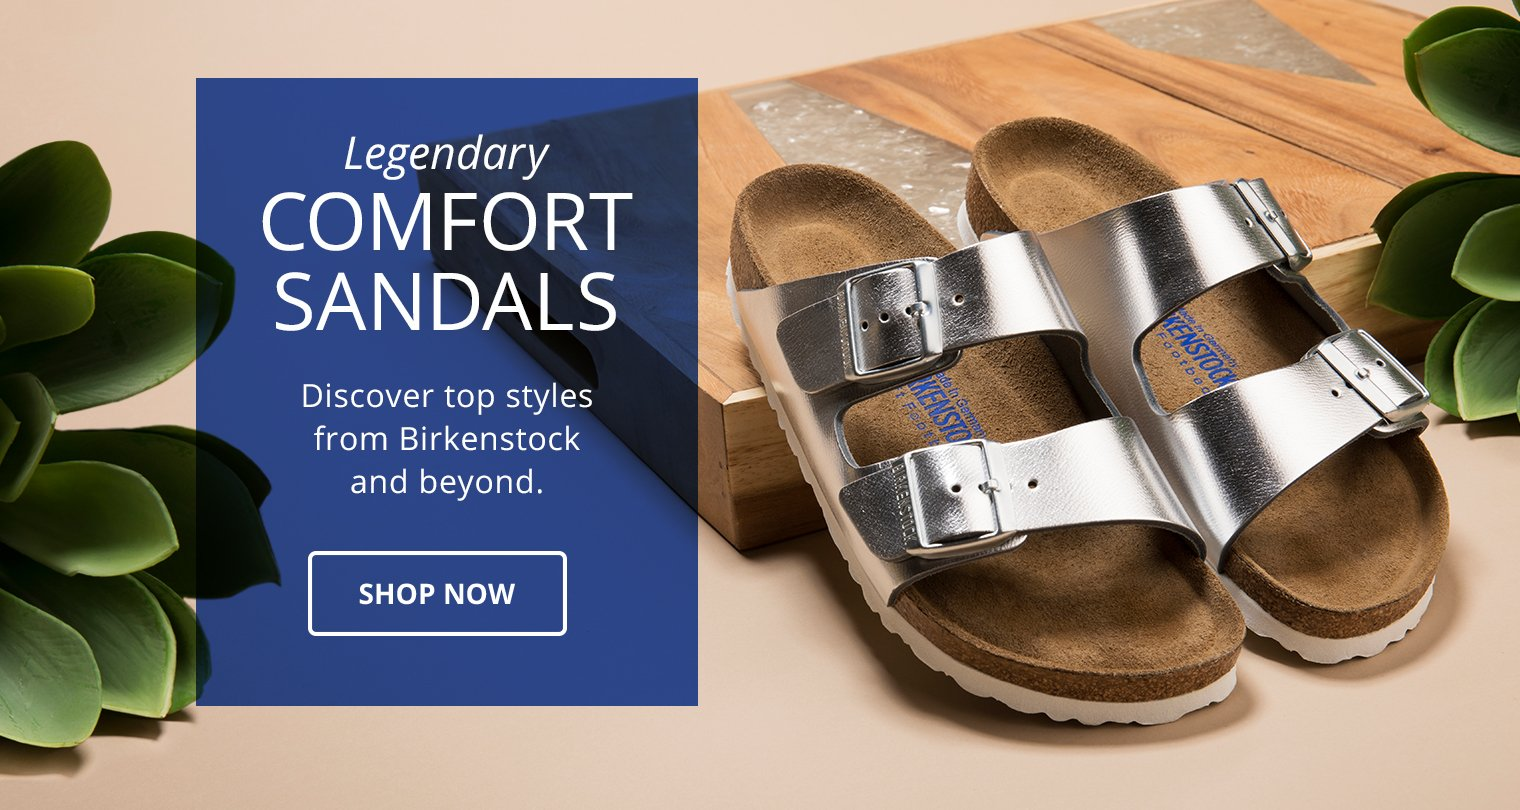 Legendary Comfort Sandals. Discover top styles from Birkenstock and Beyond.